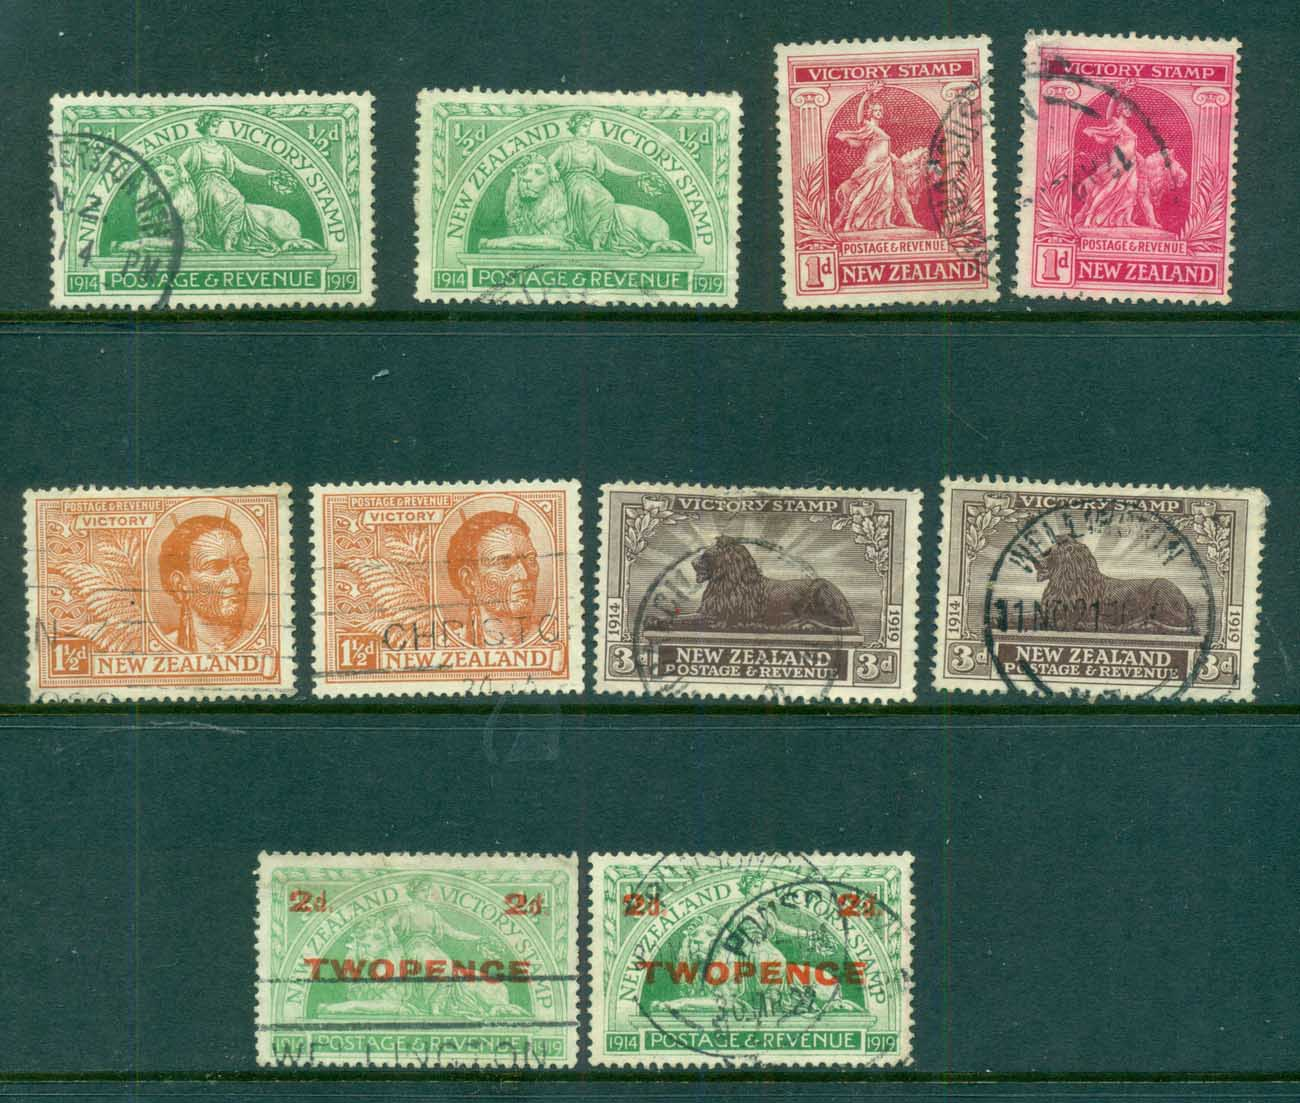 New Zealand 1920-22 Victory Issue Assorted oddments (faults) FU lot71531